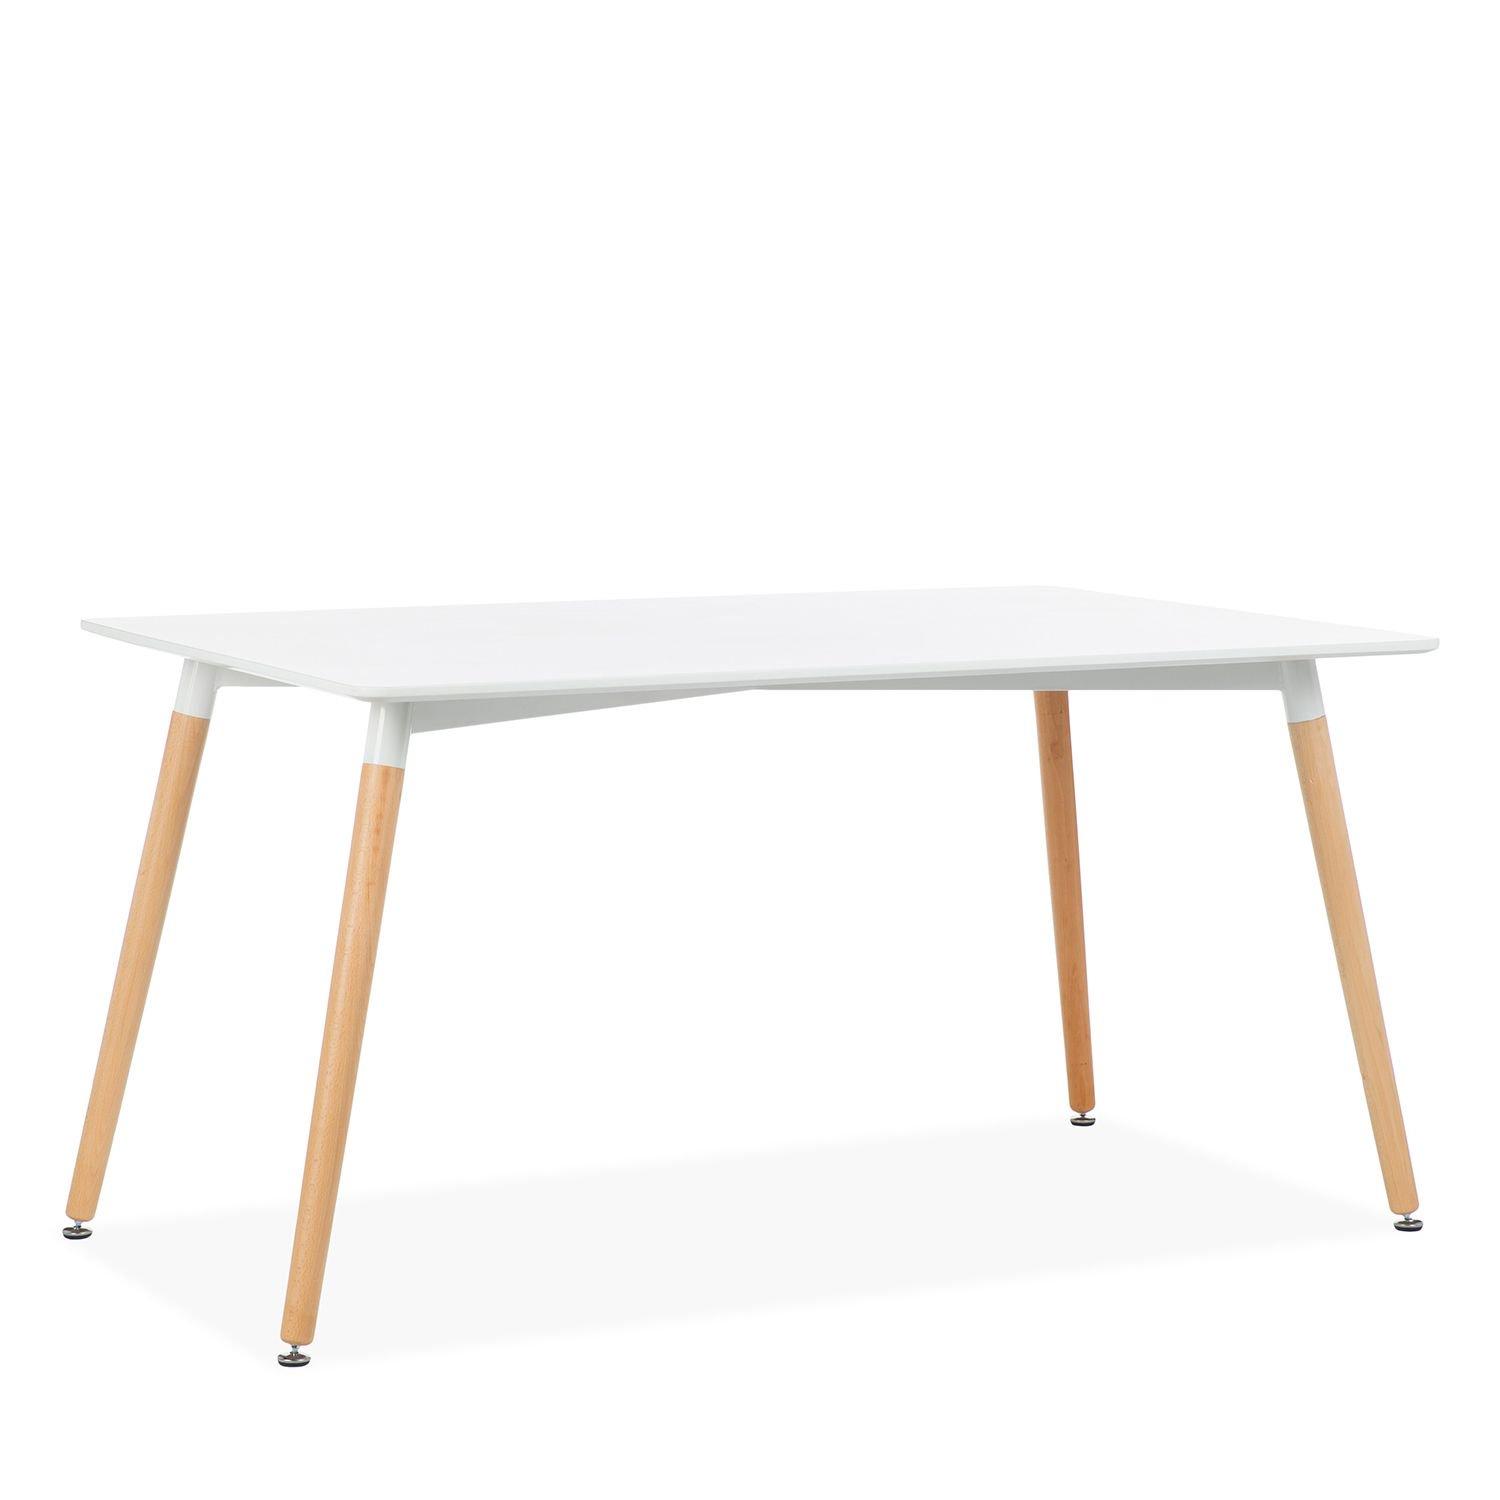 Simple design MDF dining table with solid wood legs